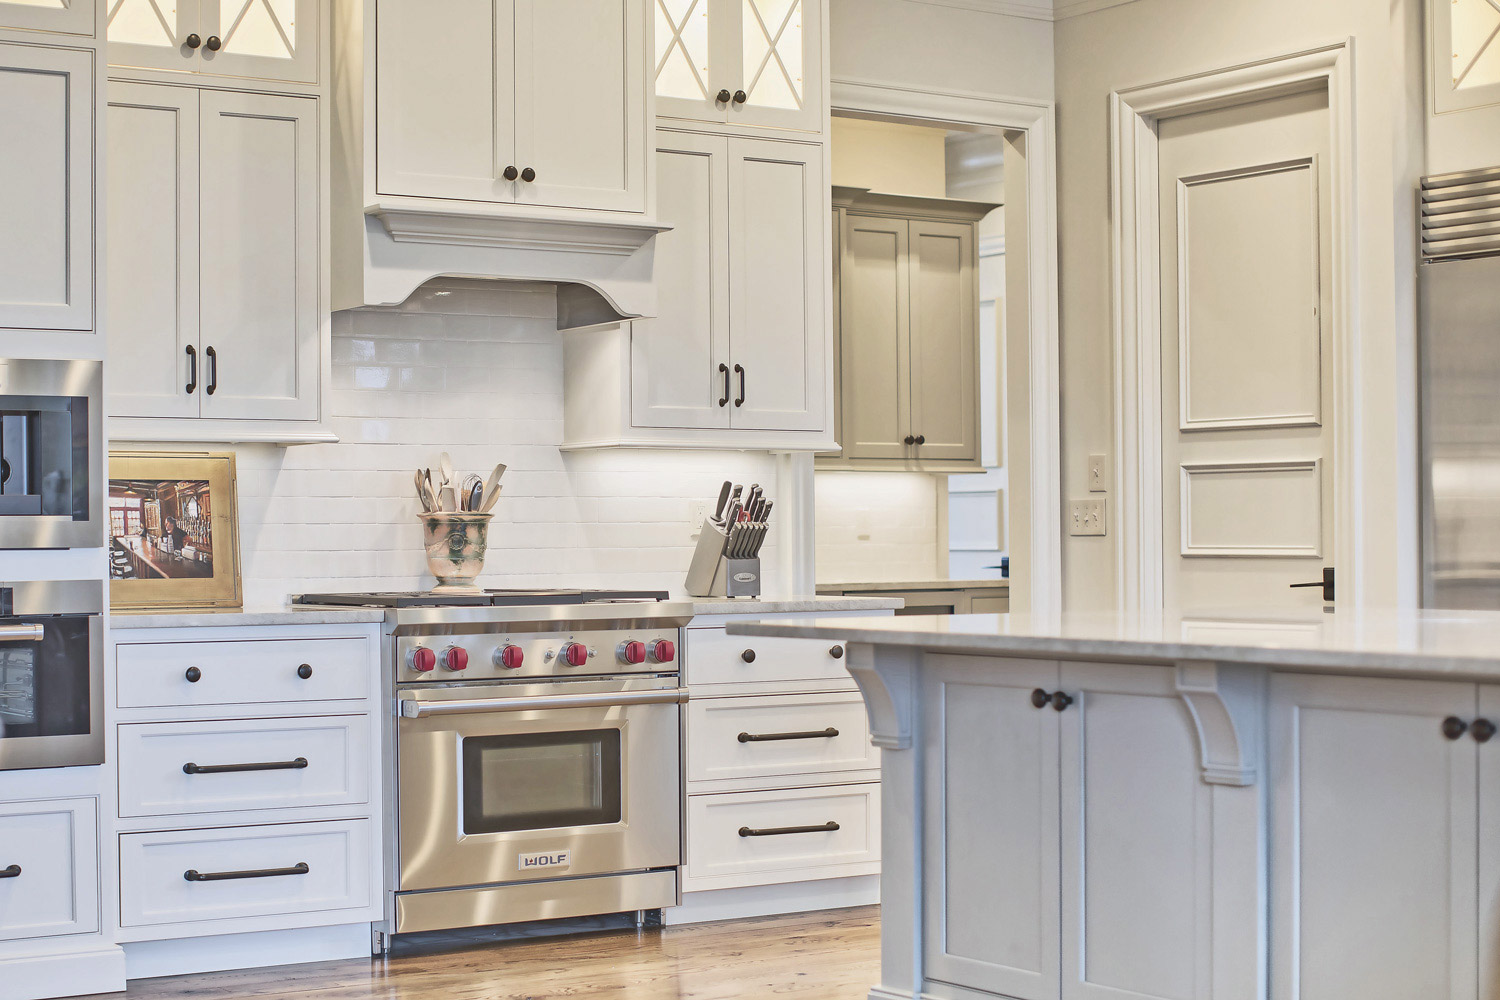 Is A Cooktop And Wall Oven Or Range Best For Your Kitchen Design Toulmin Cabinetry Design